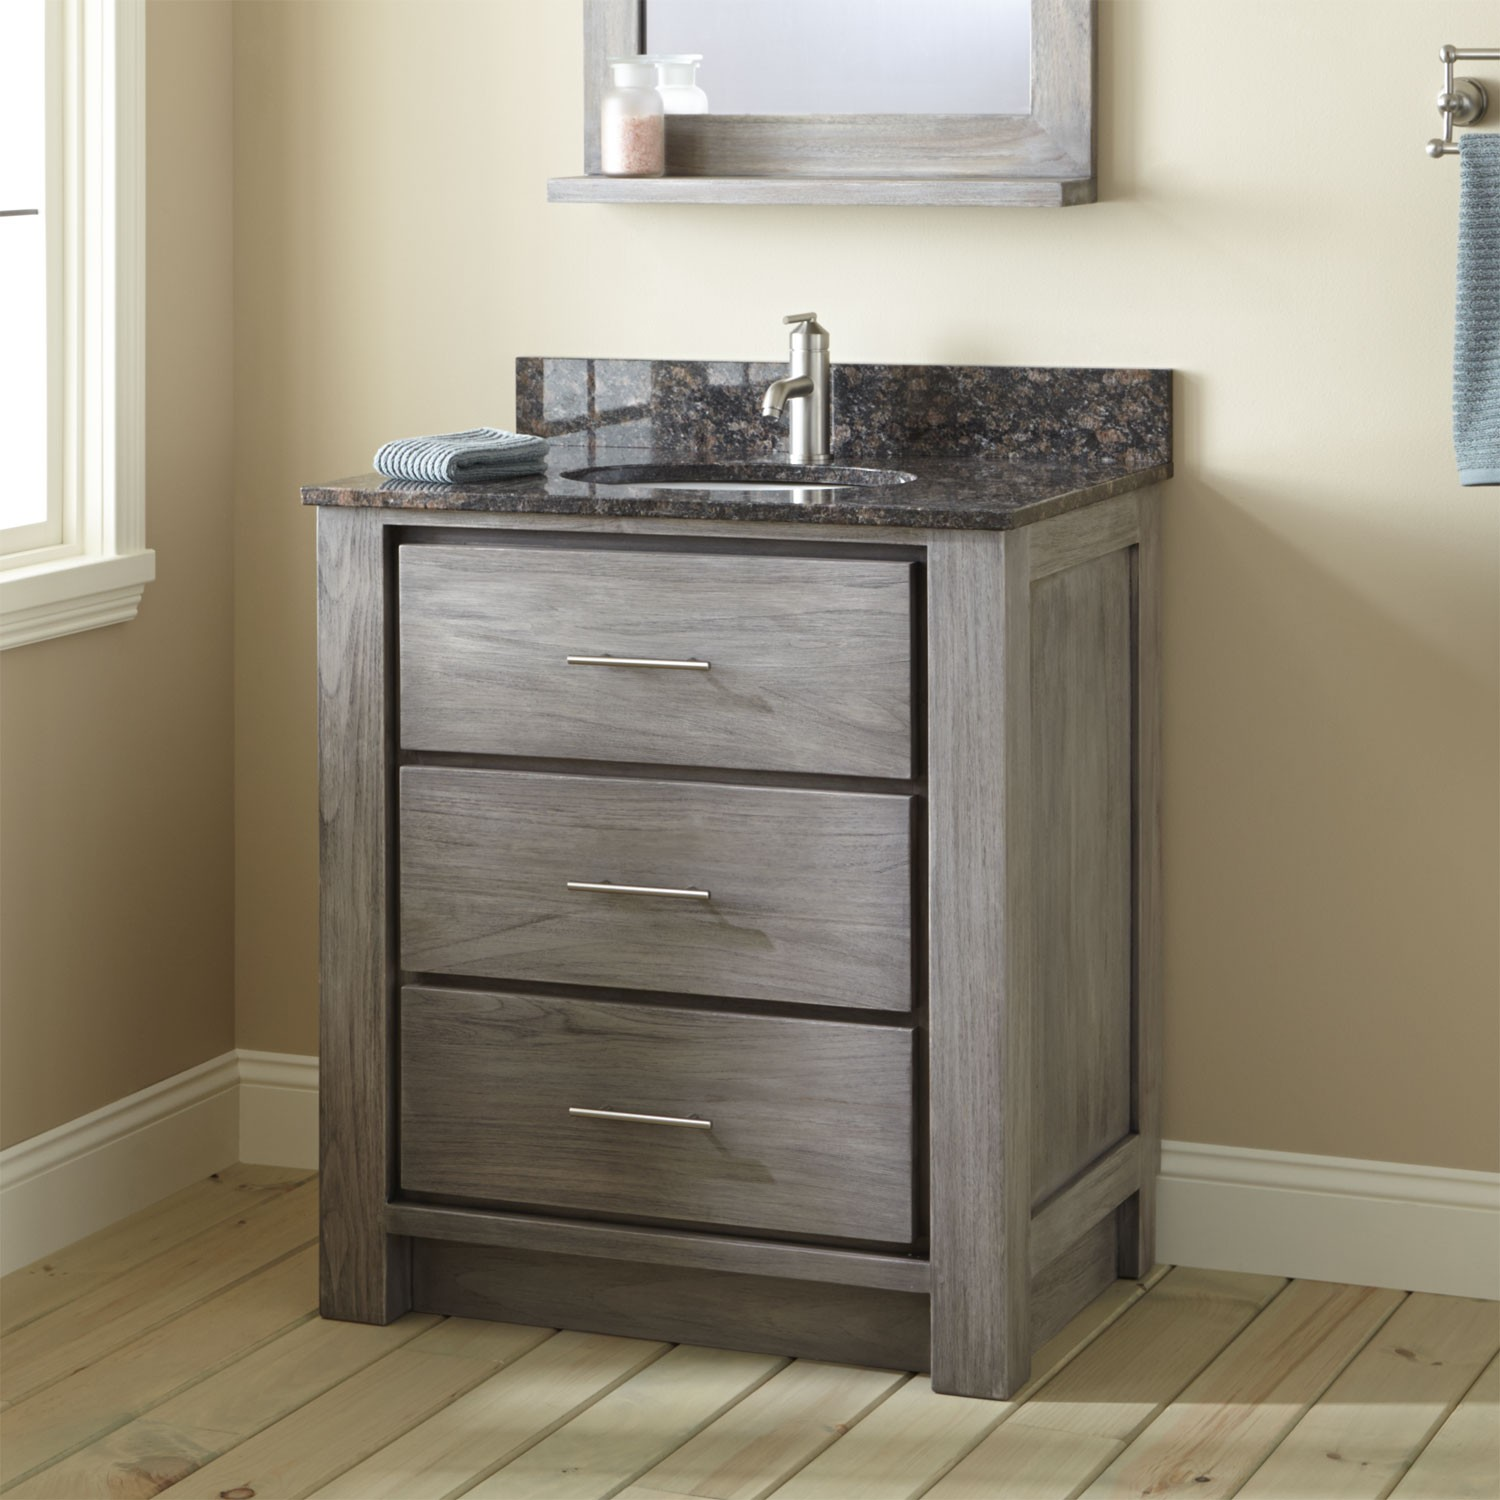 Small bathroom vanities for layouts lacking space eva - Bathroom vanities small spaces decoration ...